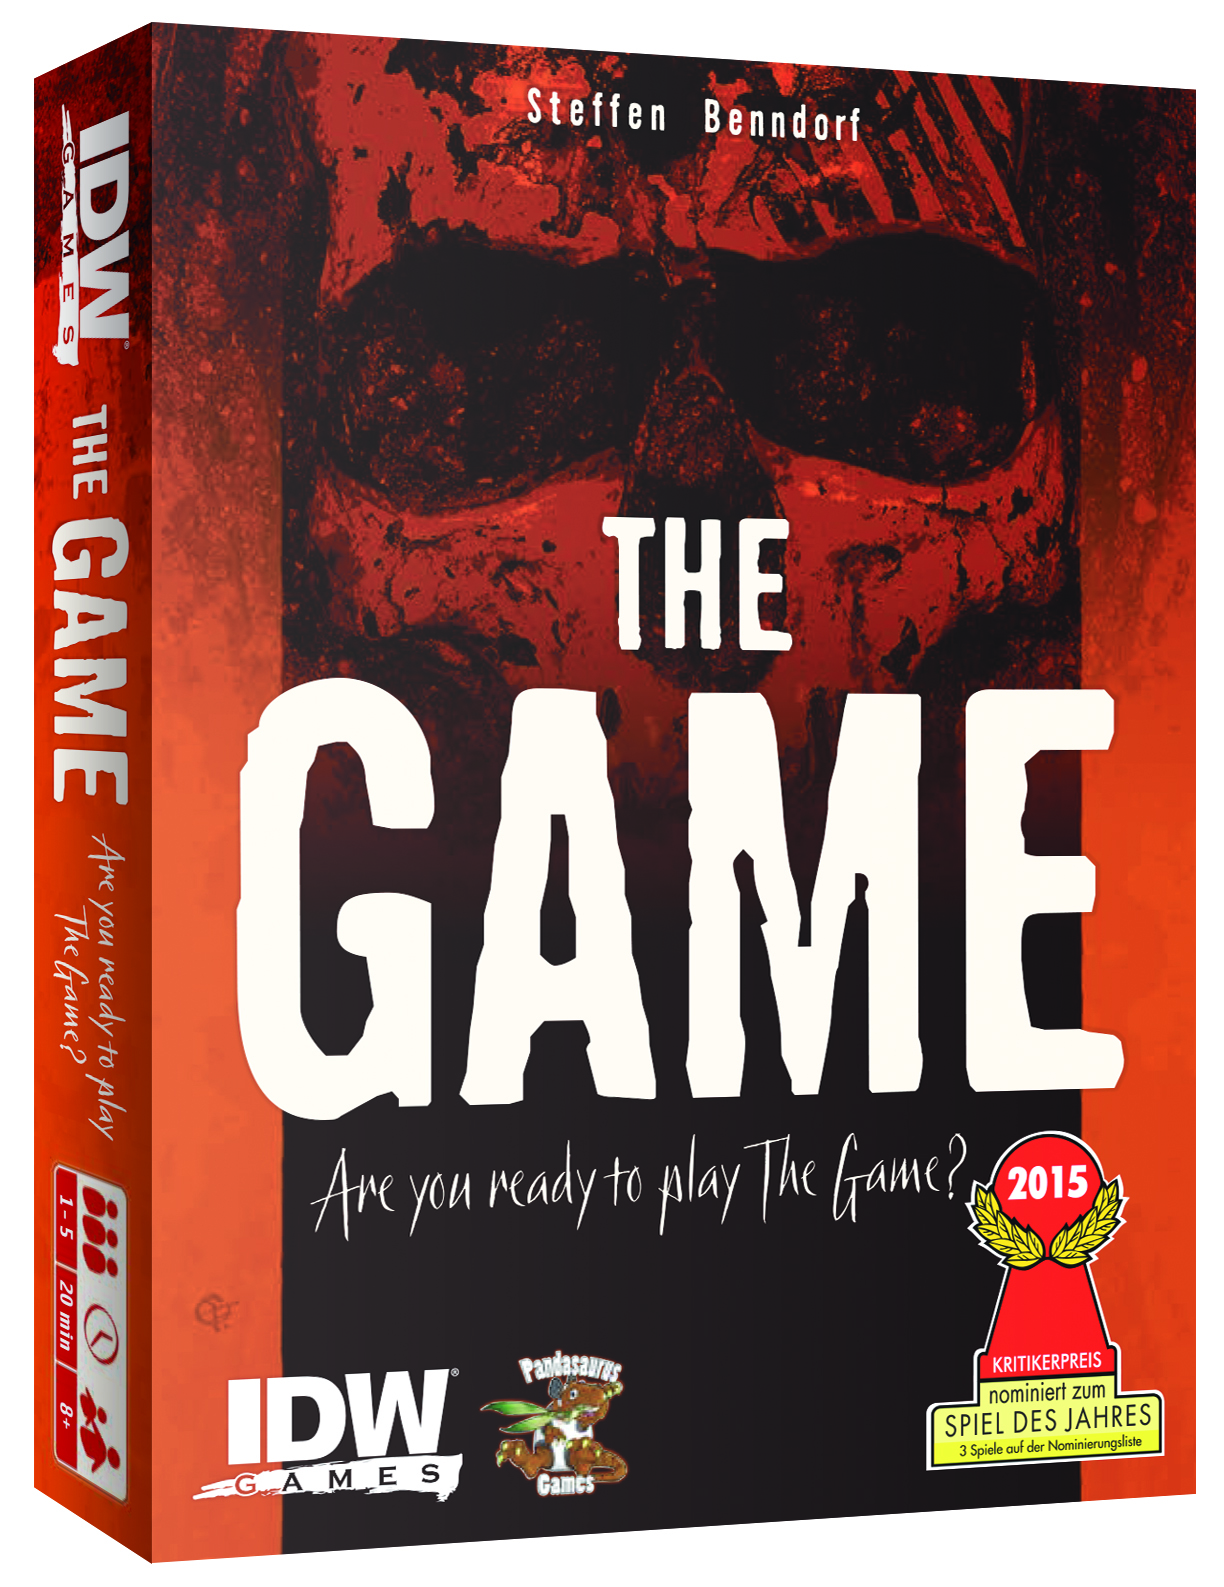 [30 mins] The Game